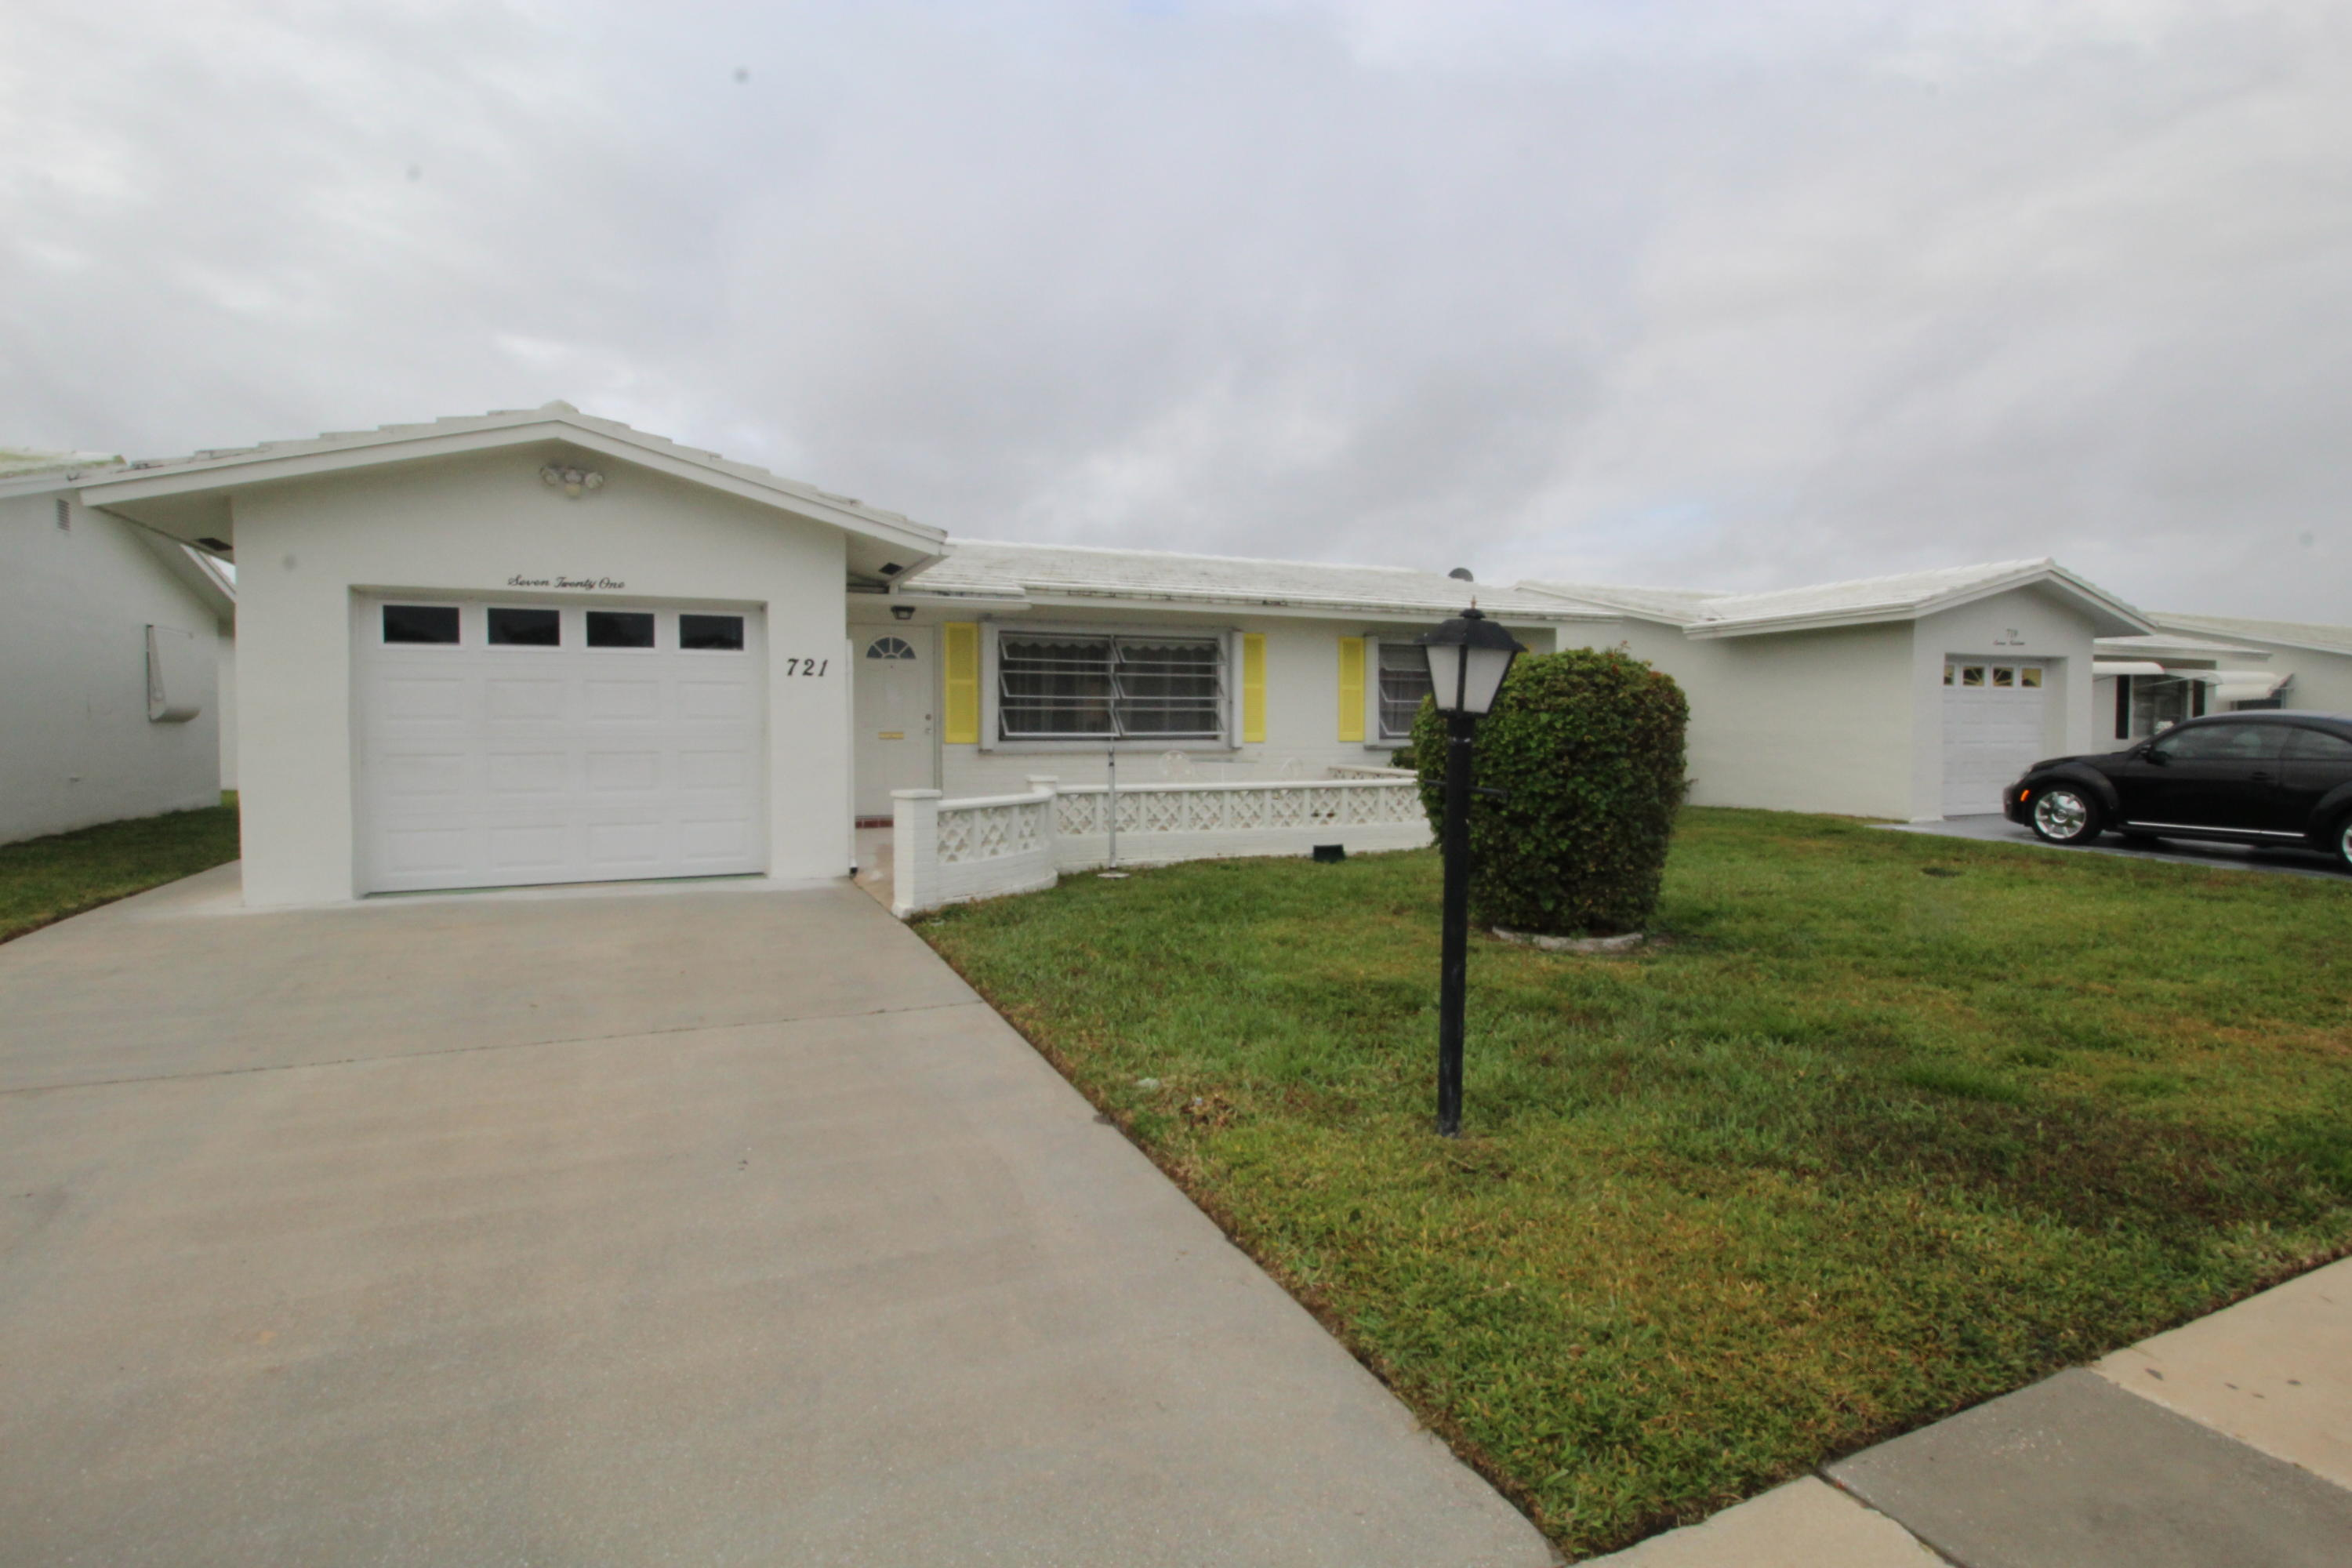 Home for sale in Leisureville Boynton Beach Florida